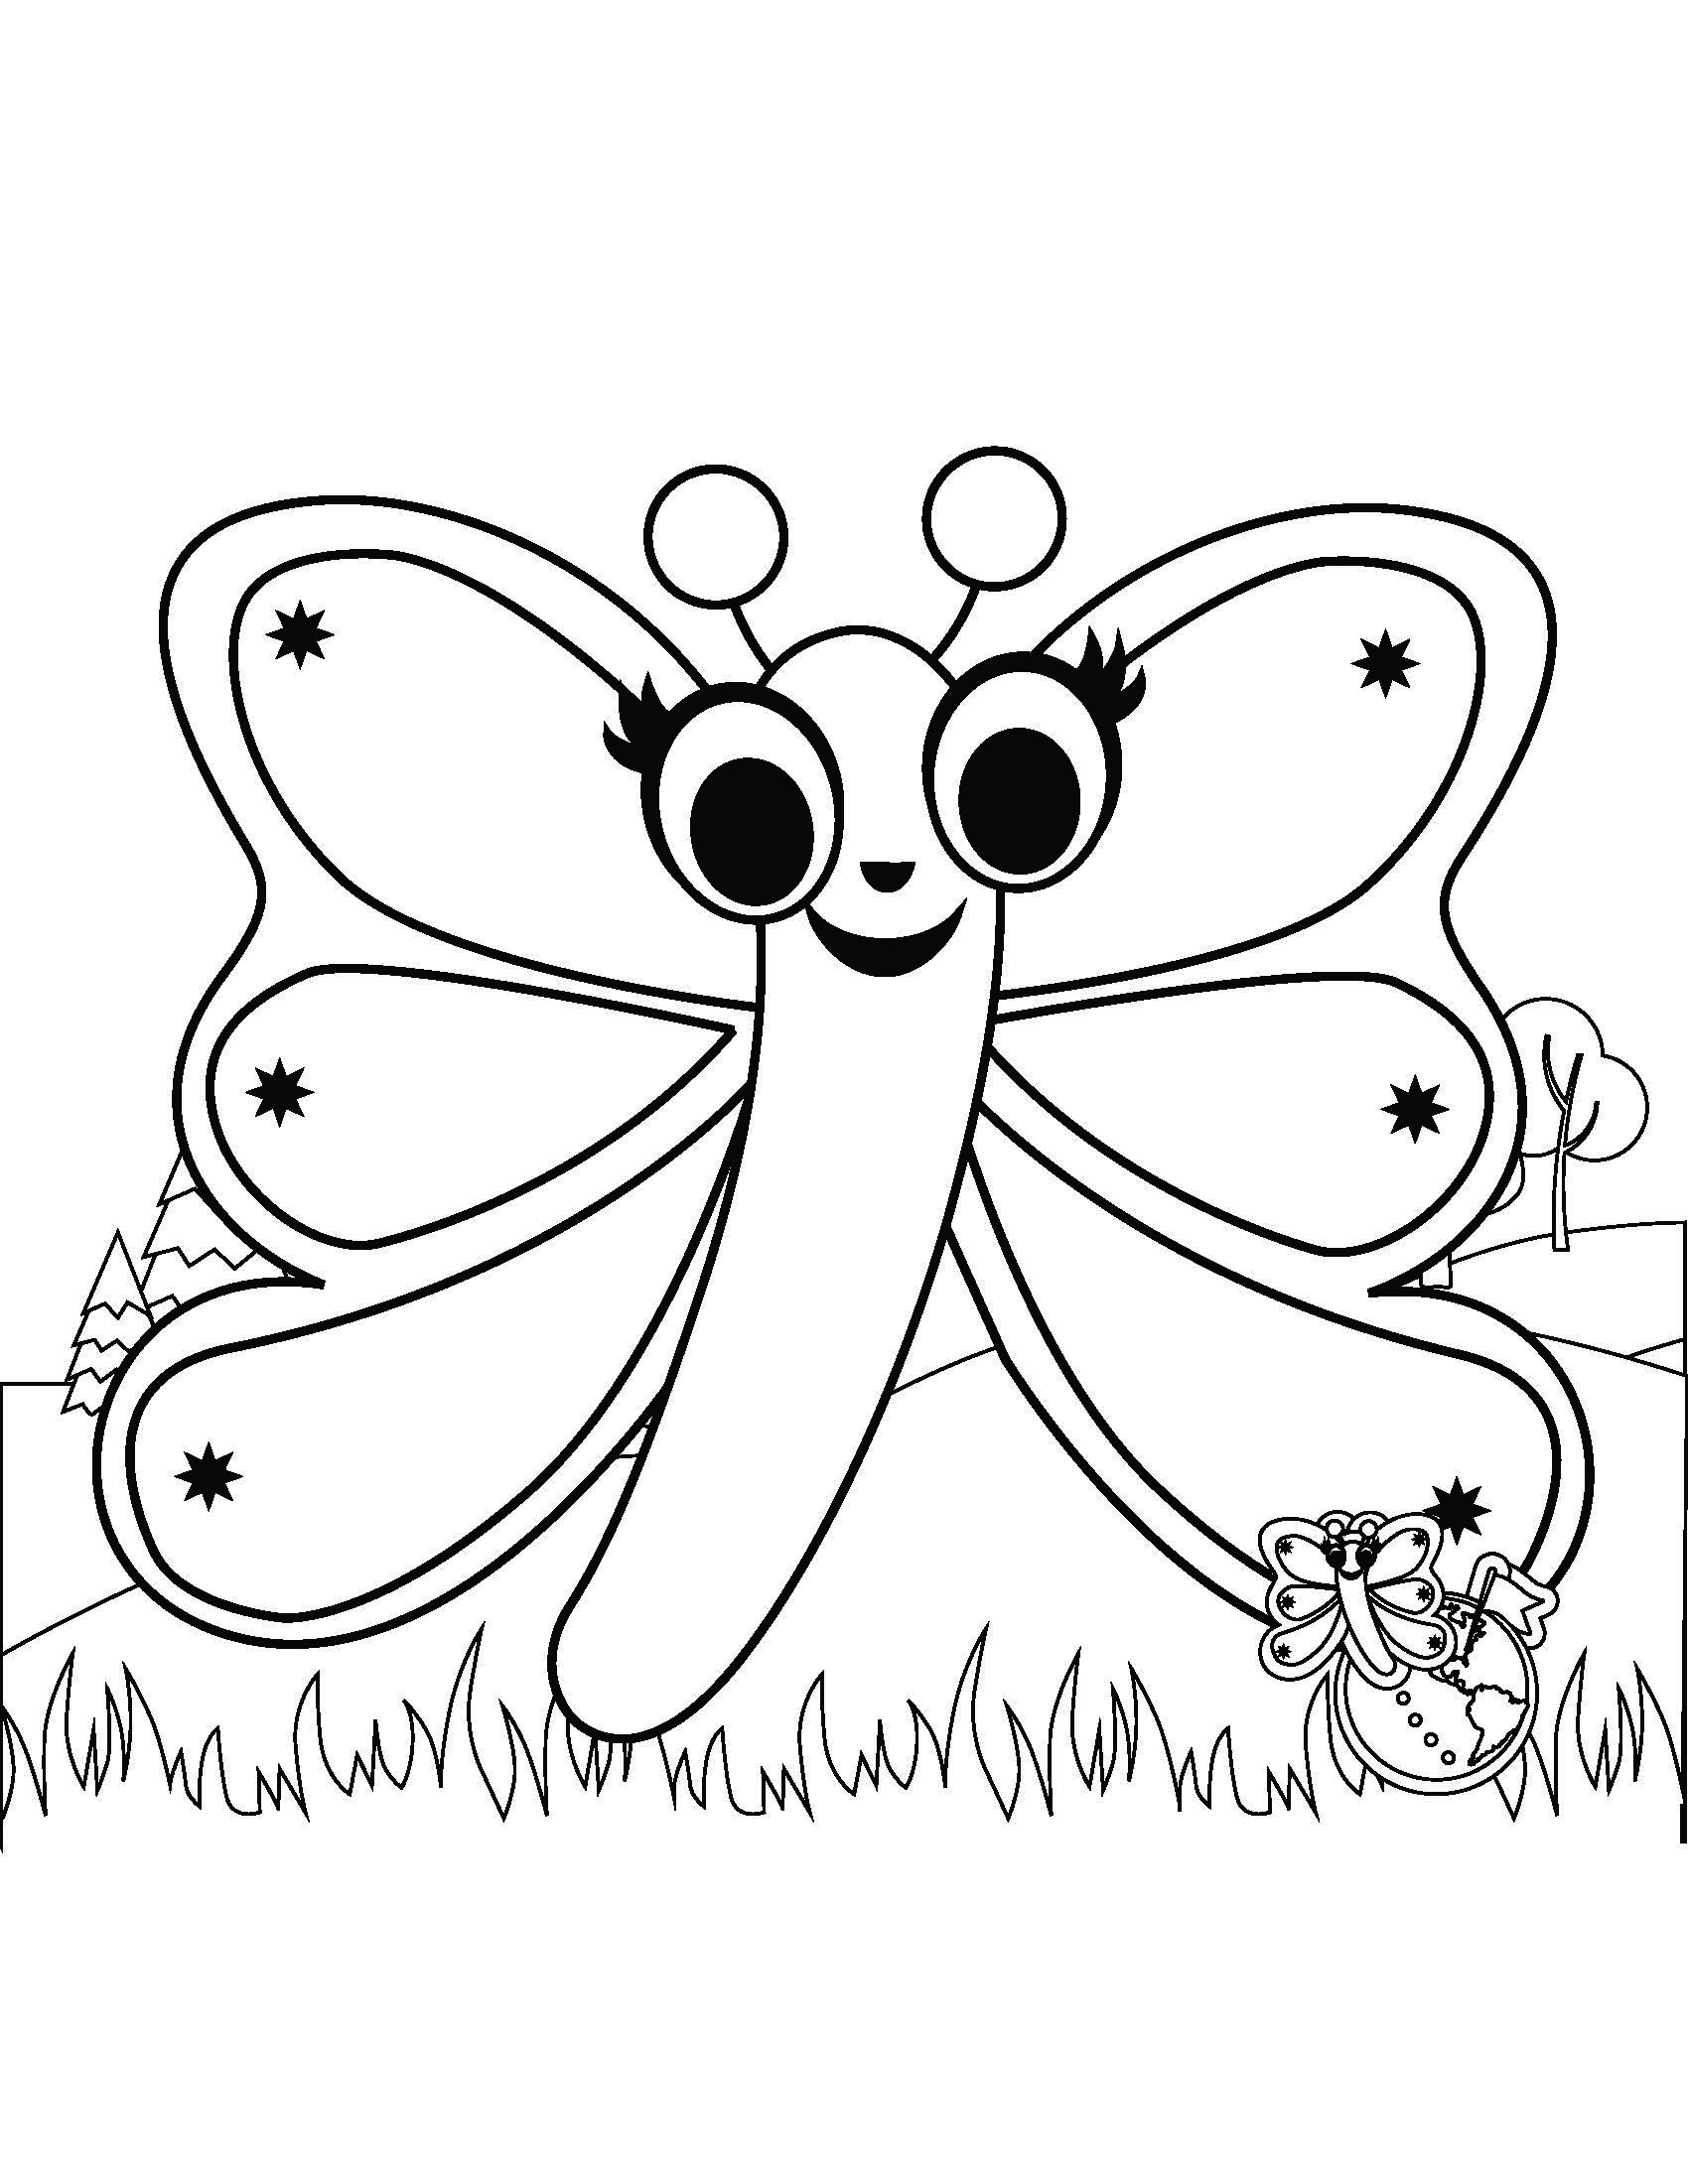 FlairFriends-Suki-the-Butterfly-Coloring-Page.jpg